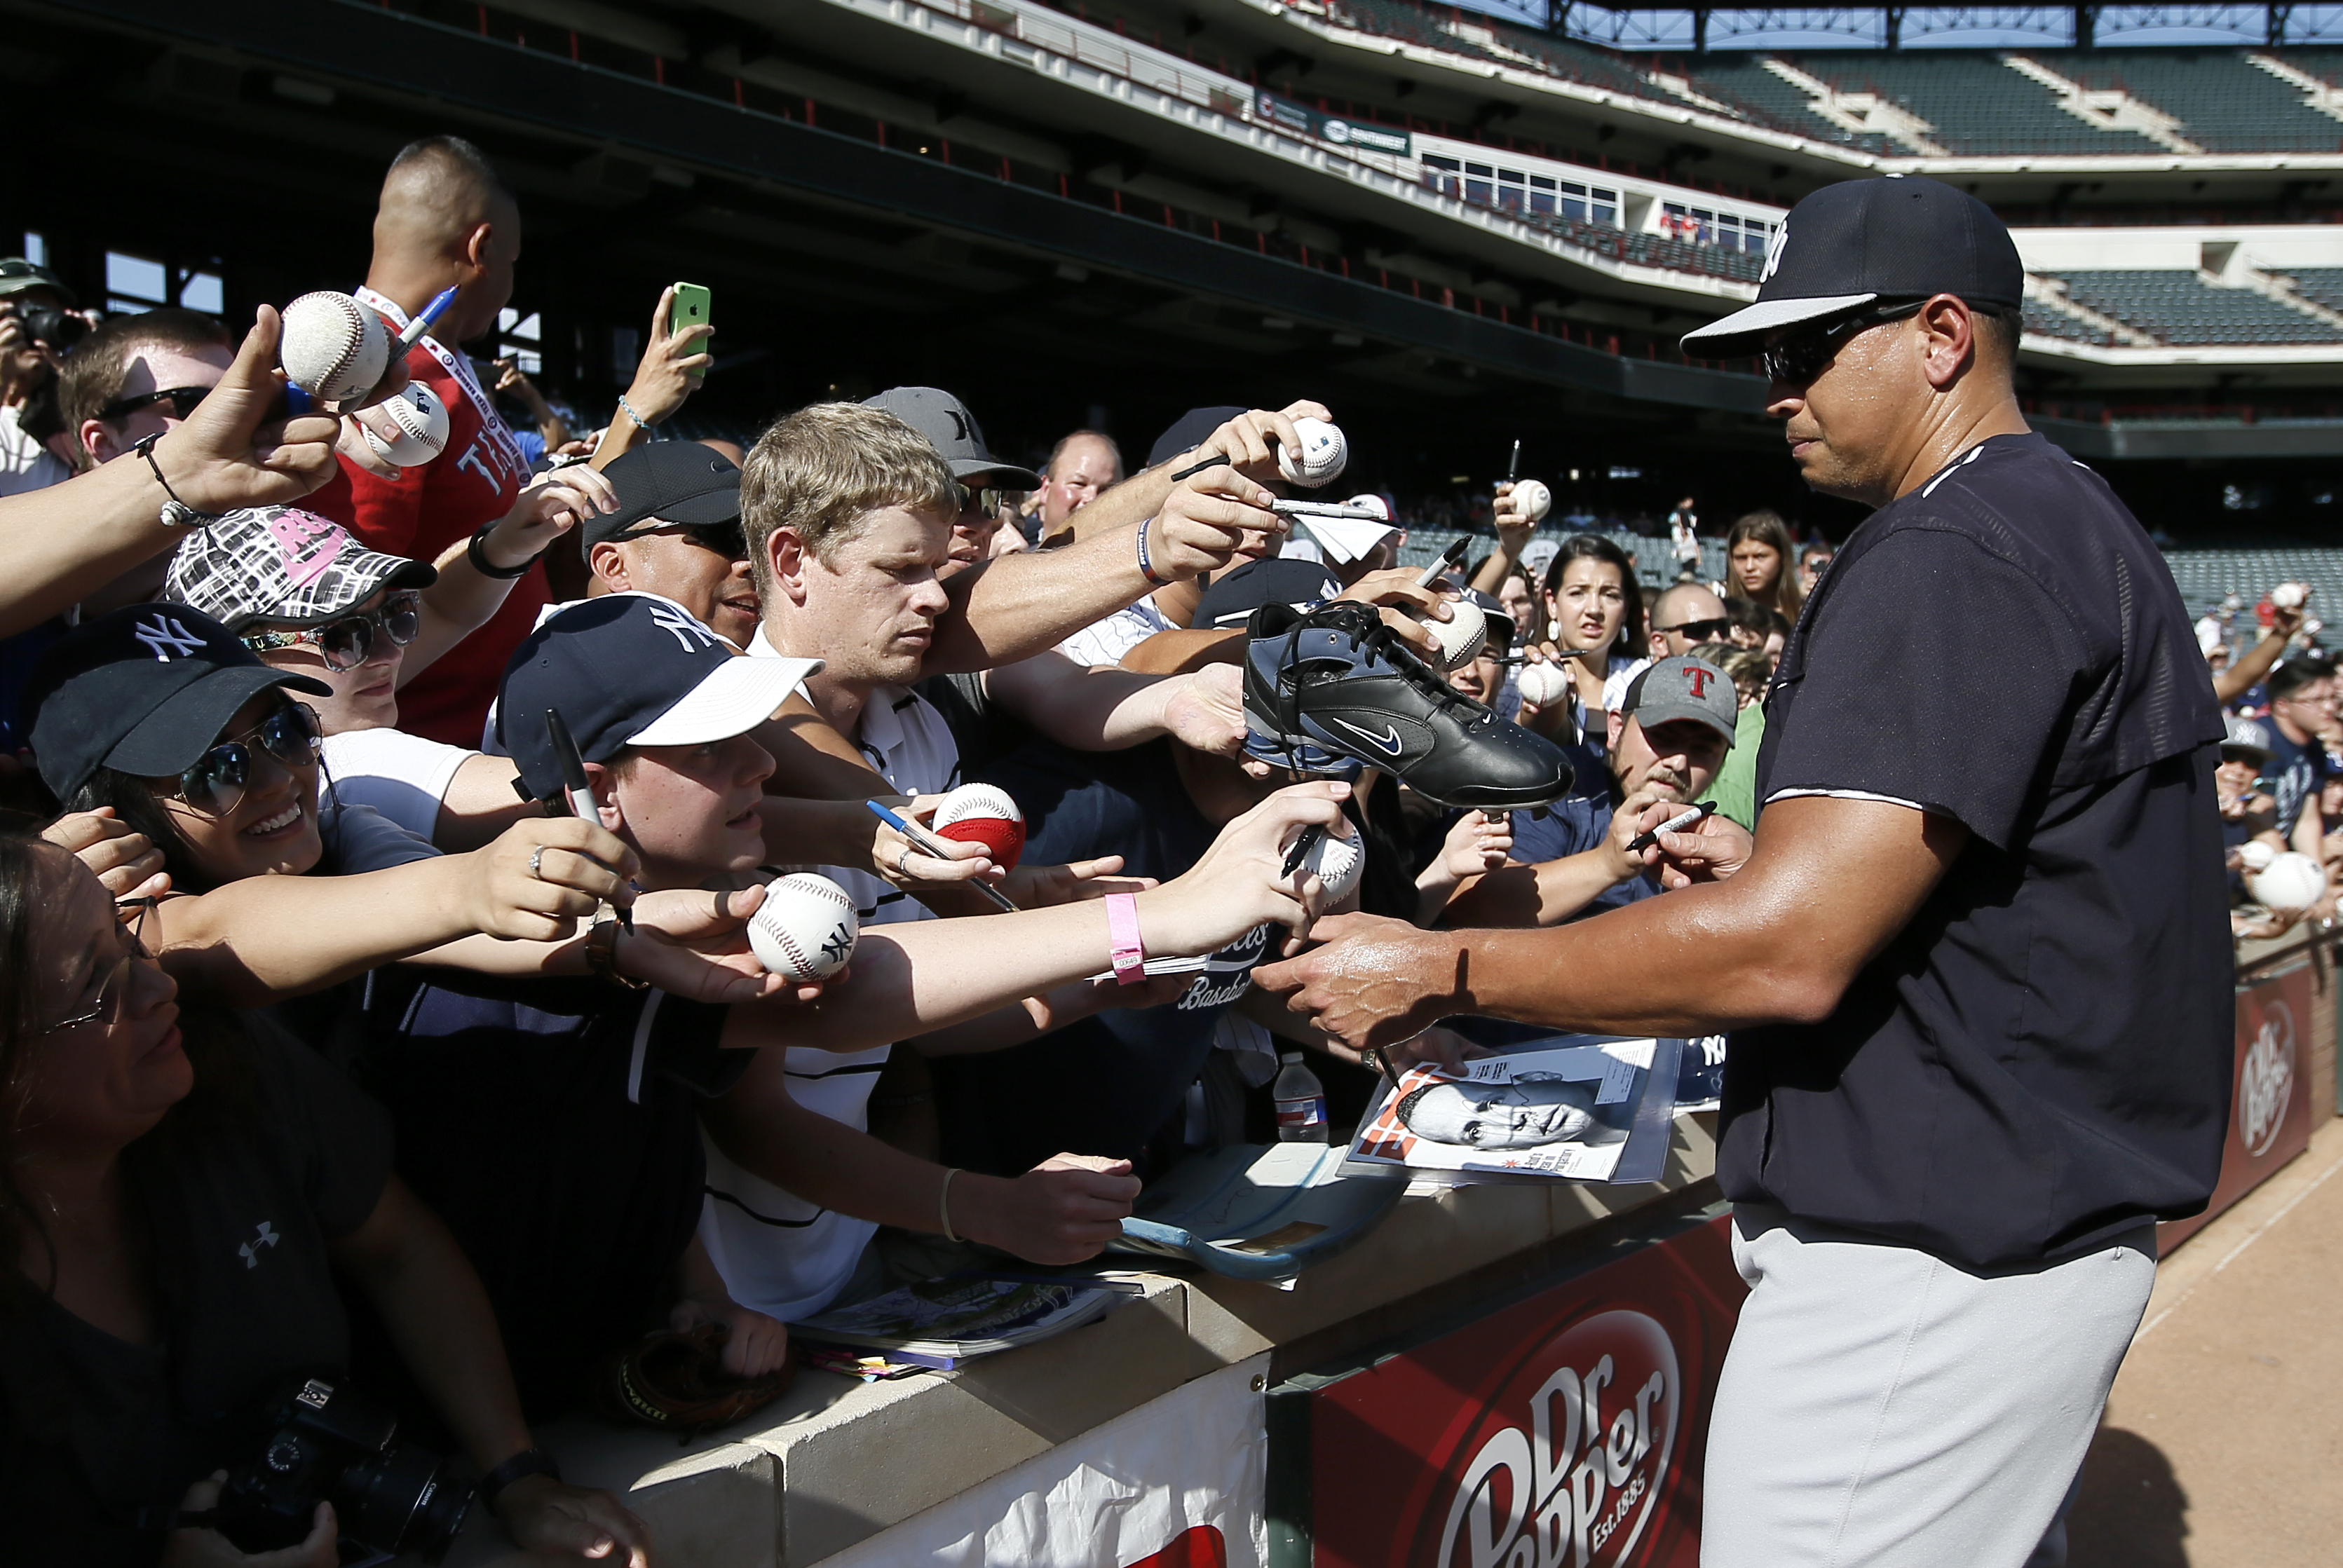 New York Yankees' Alex Rodriguez signs autographs for fans before a baseball game against the Texas Rangers, Monday,July 27, 2015, in Arlington, Texas. (AP Photo/Tony Gutierrez)